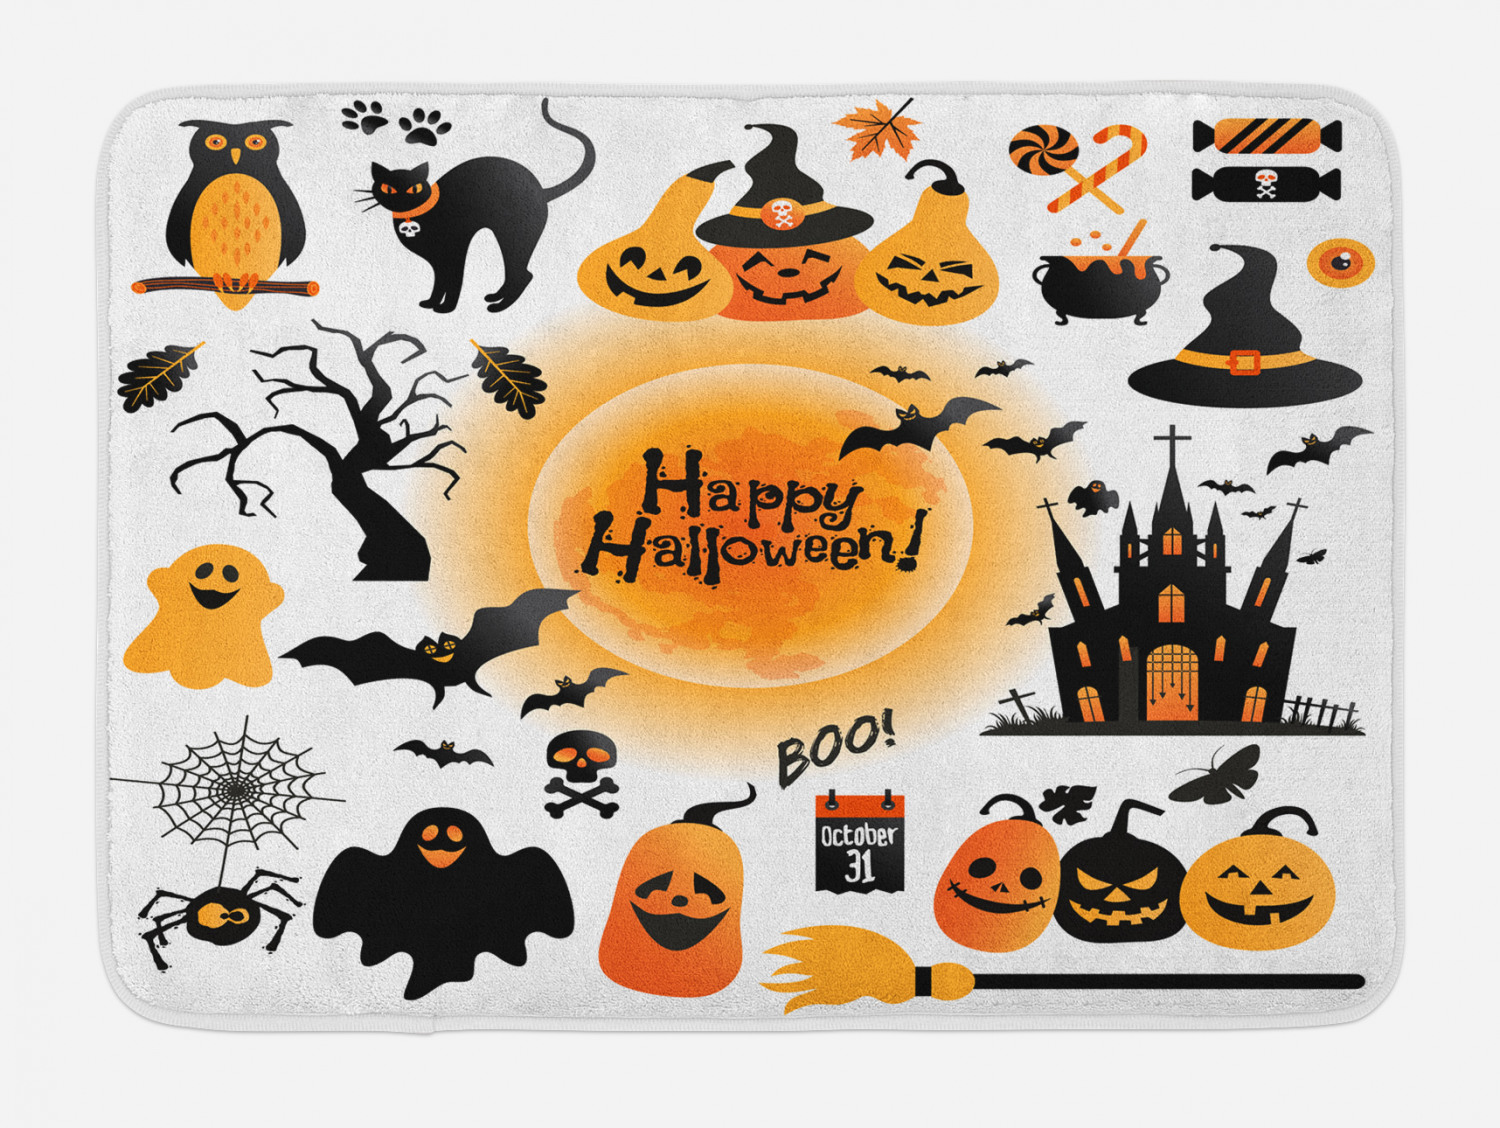 Halloween Bath Mat All Hallows Day Objects Haunted House Owl And Trick Or Treat Candy Black Cat Non Slip Plush Mat Bathroom Kitchen Laundry Room Decor 29 5 X 17 5 Inches Orange Black Ambesonne